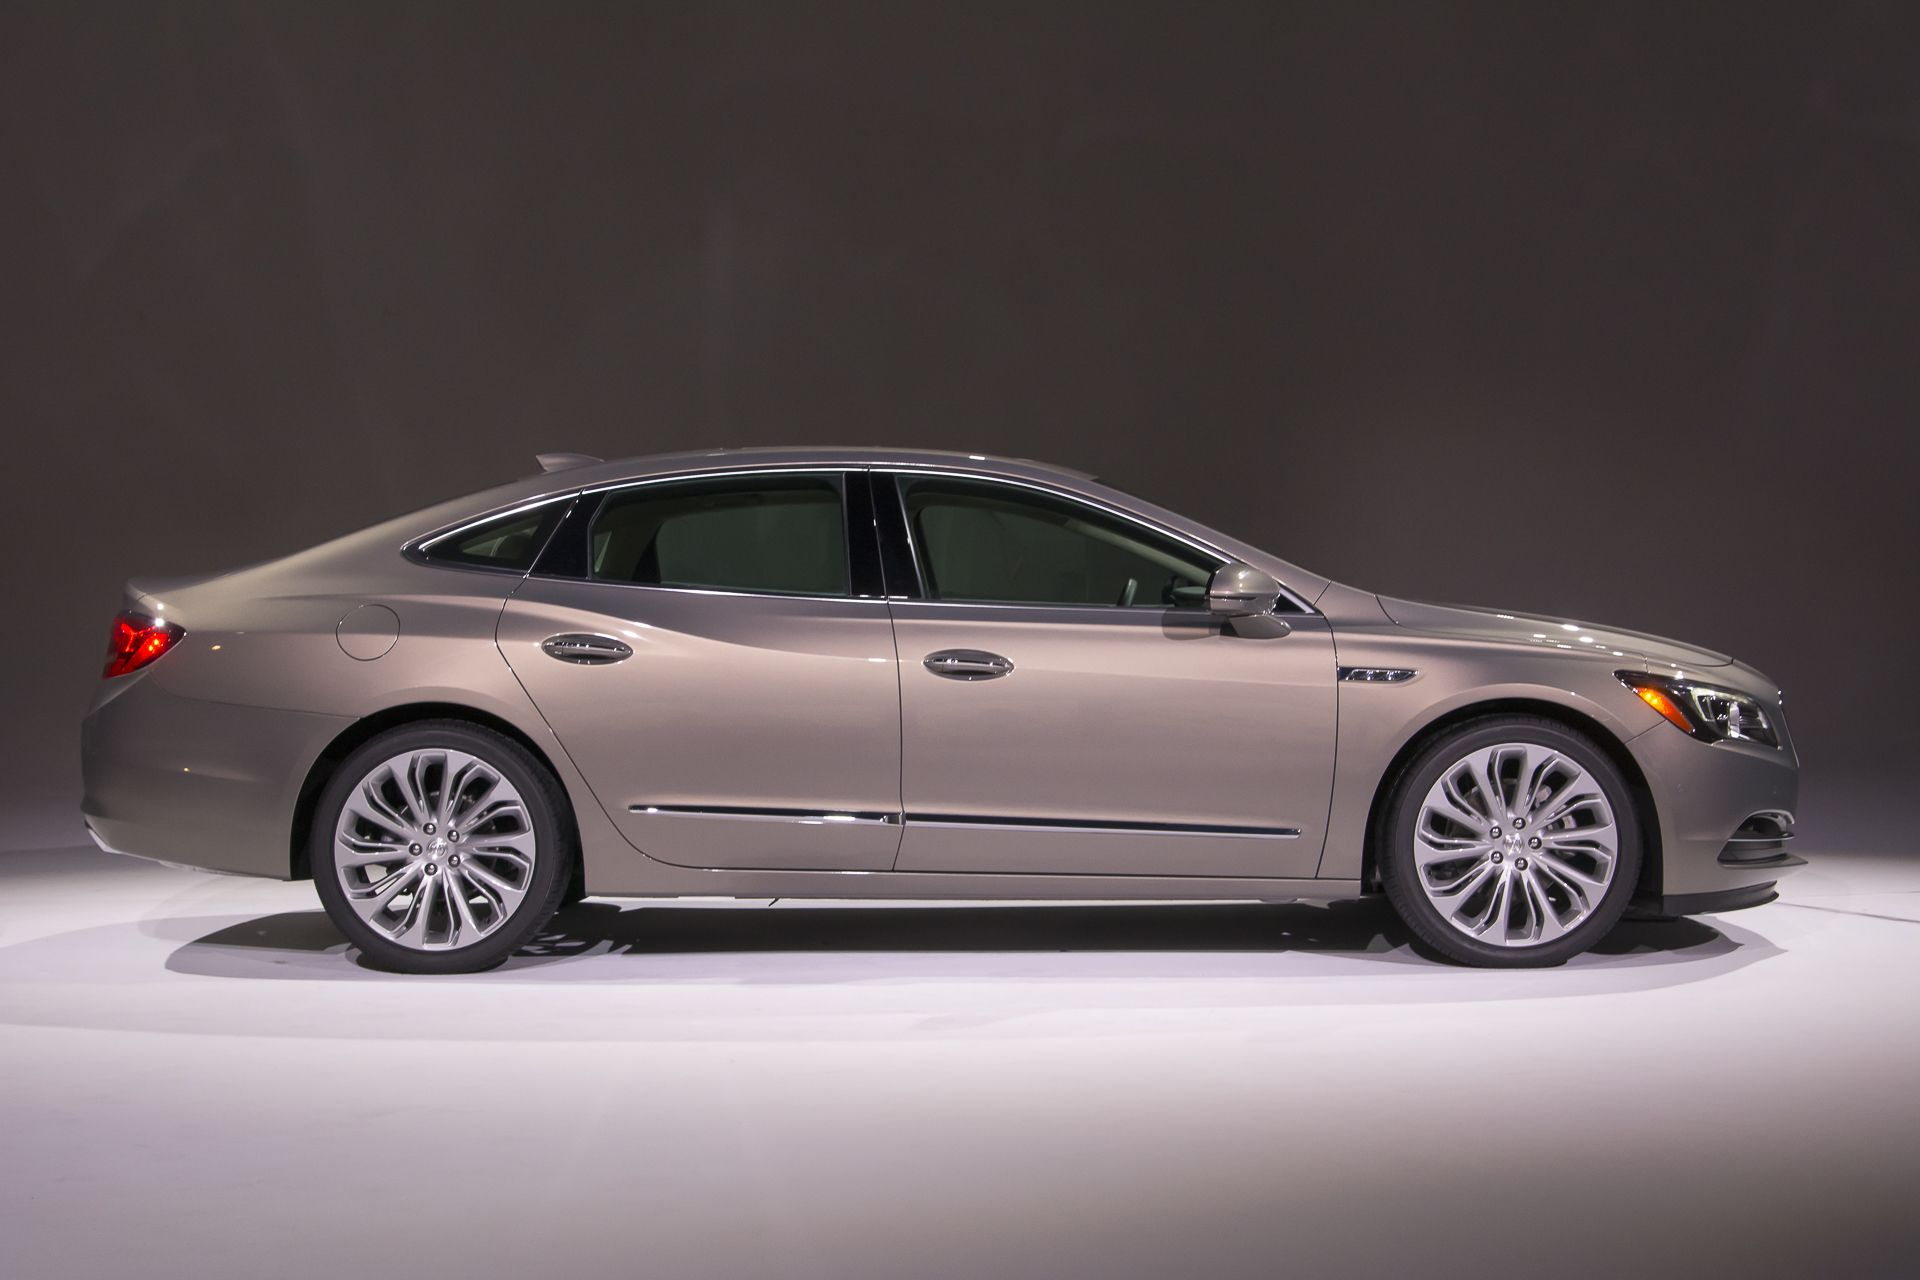 2015 Buick Grand National >> Best 25+ Buick lacrosse ideas on Pinterest | 2017 buick lacrosse, 2015 buick and Buick 2016